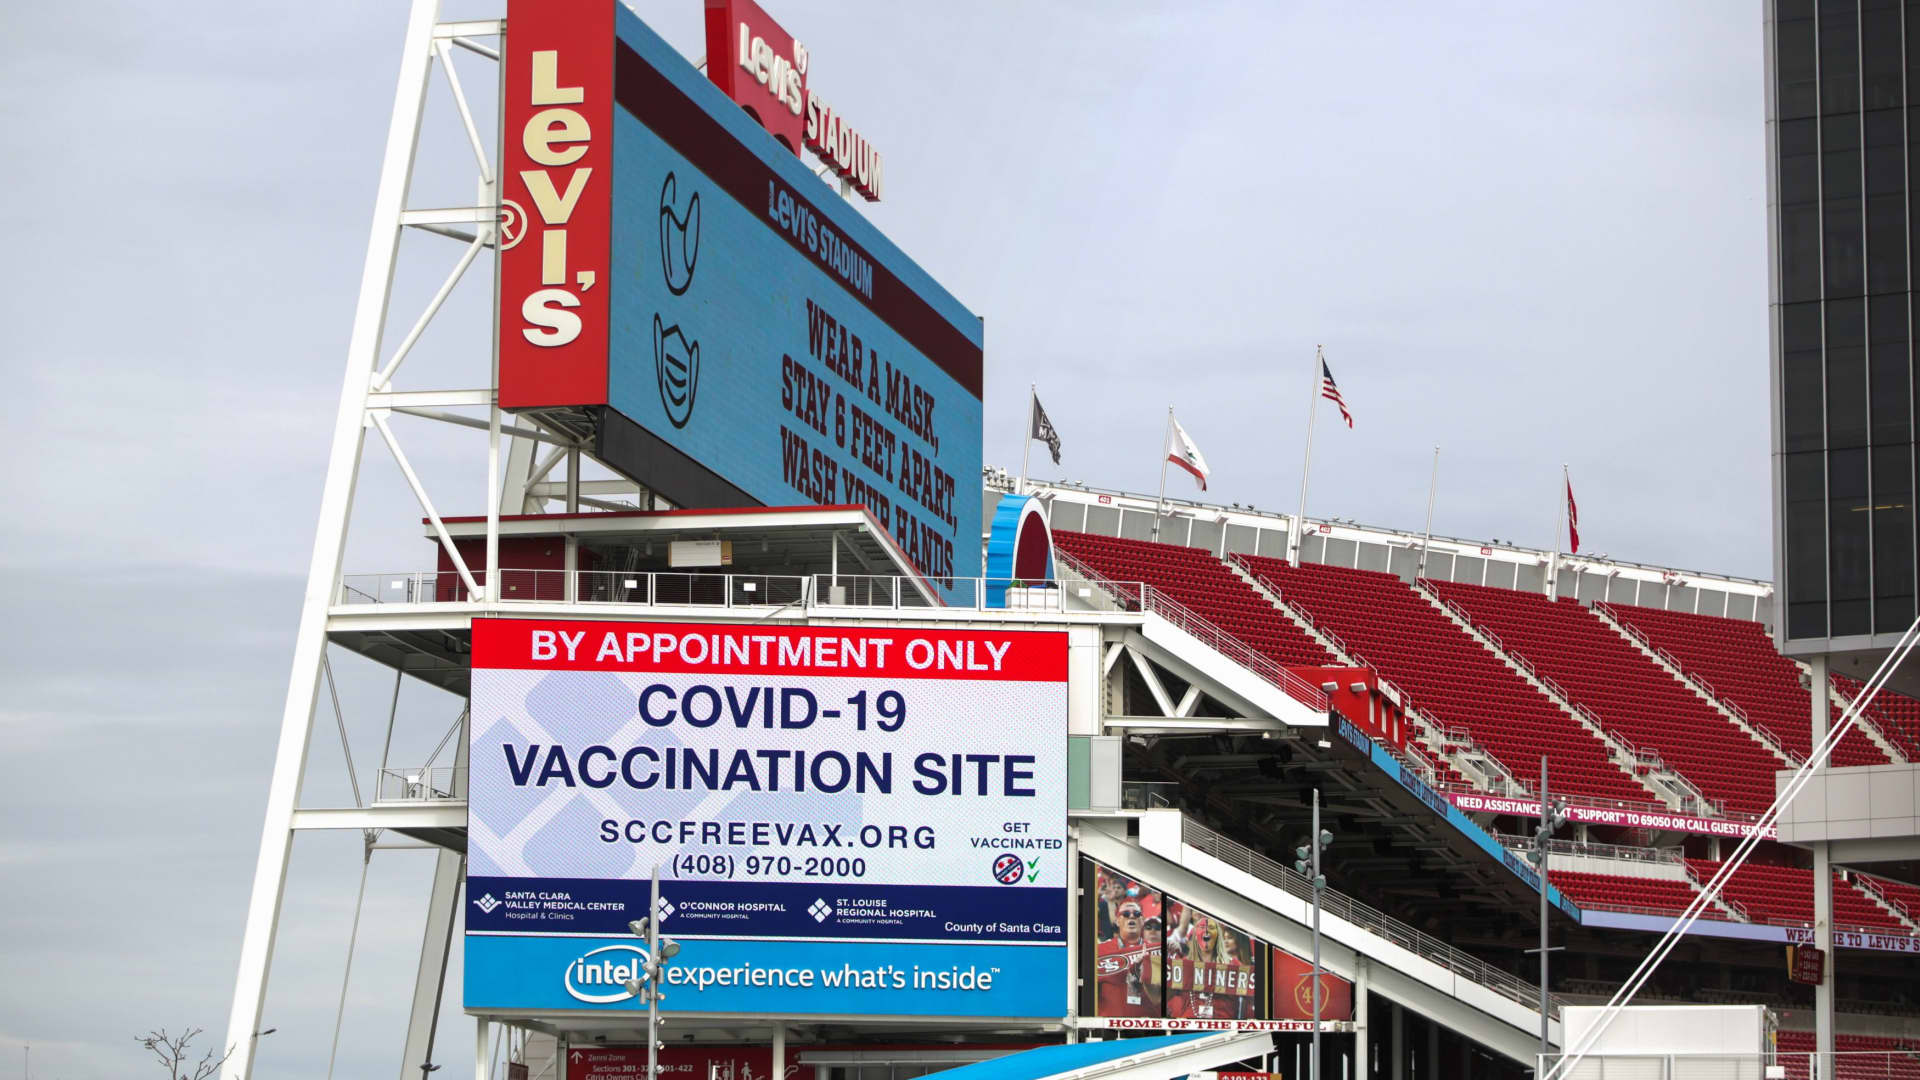 Signs show information for a vaccination site run by the Santa Clara County health department at Levi's Stadium, home of the San Francisco 49ers NFL football team, in Santa Clara, California, February 9, 2021.